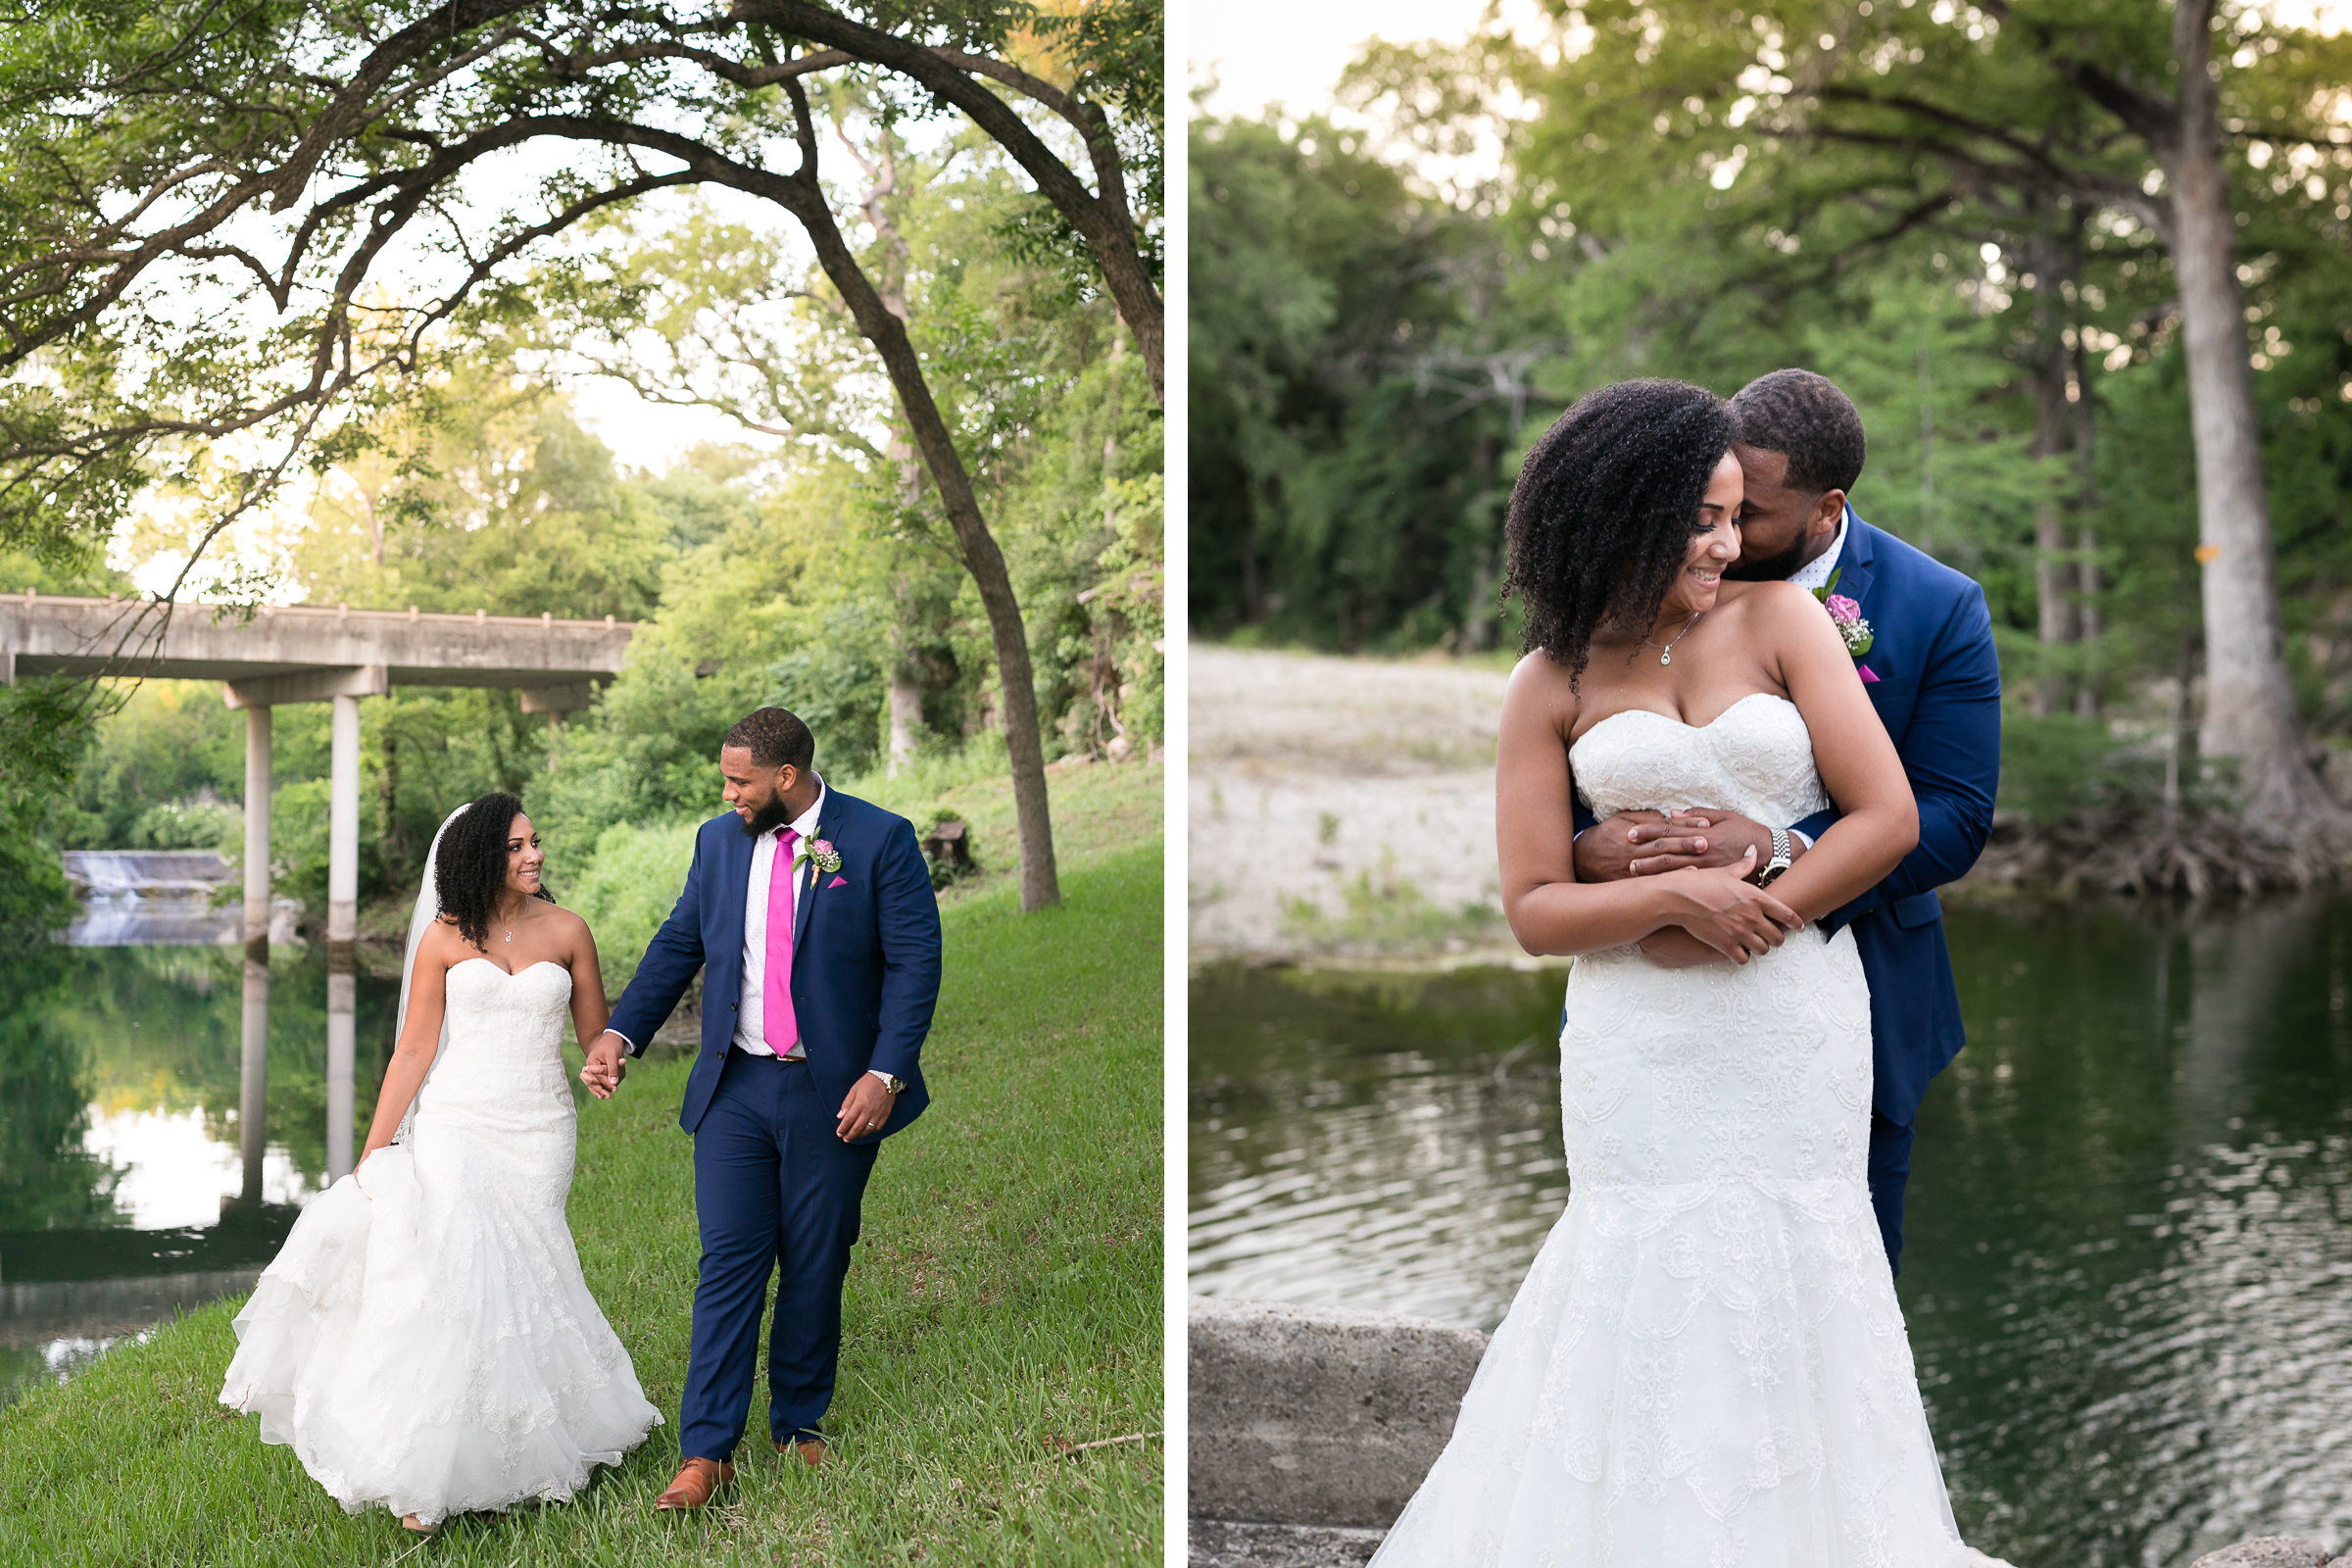 Creekside-wedding-texas.jpg